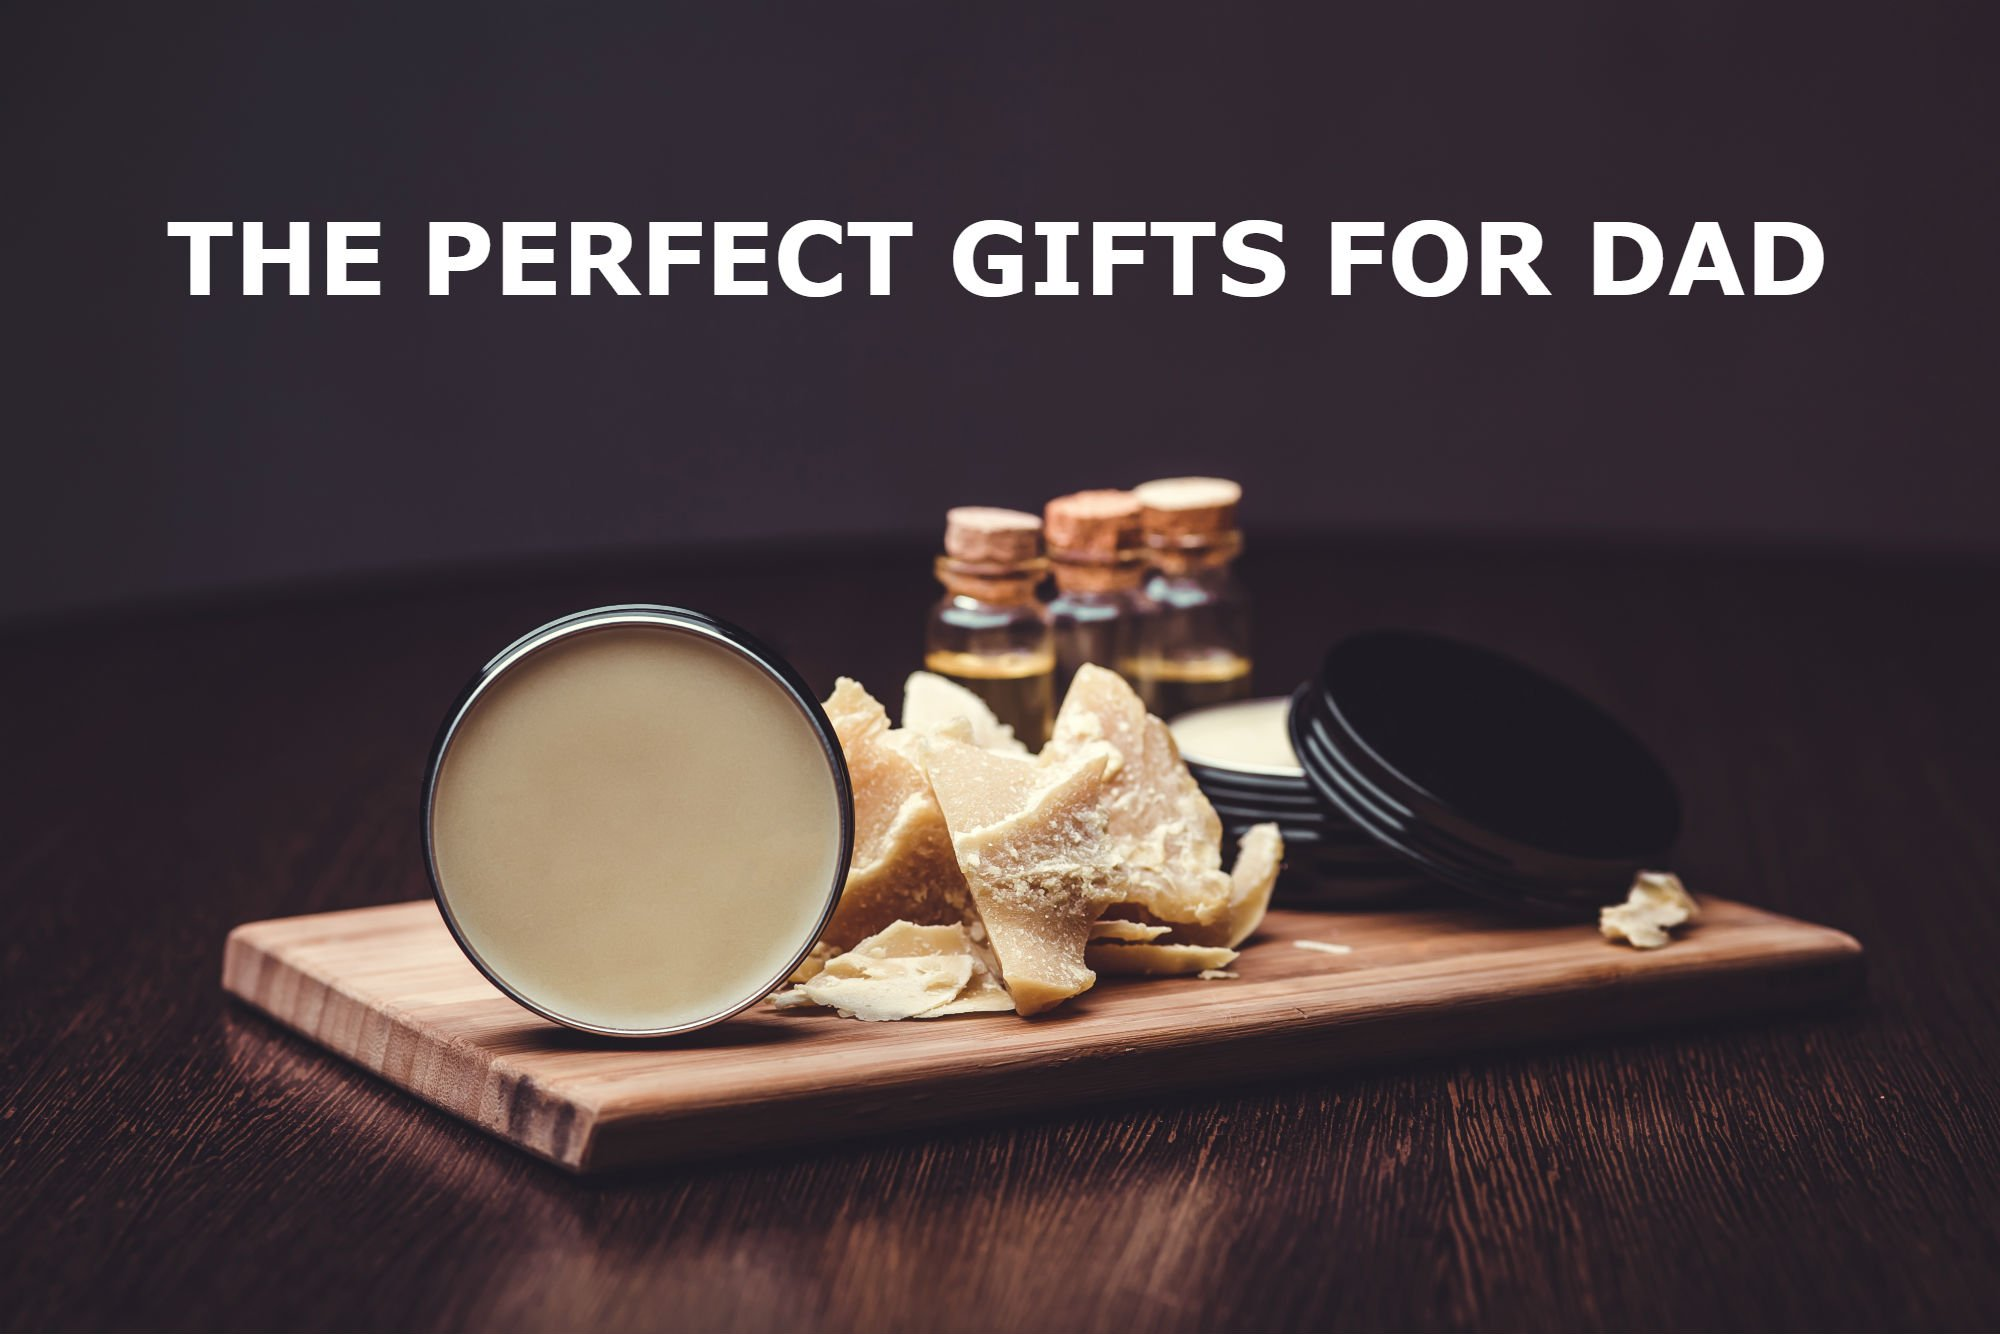 SPUD HOLIDAY GUIDE: GIFTS FOR DAD